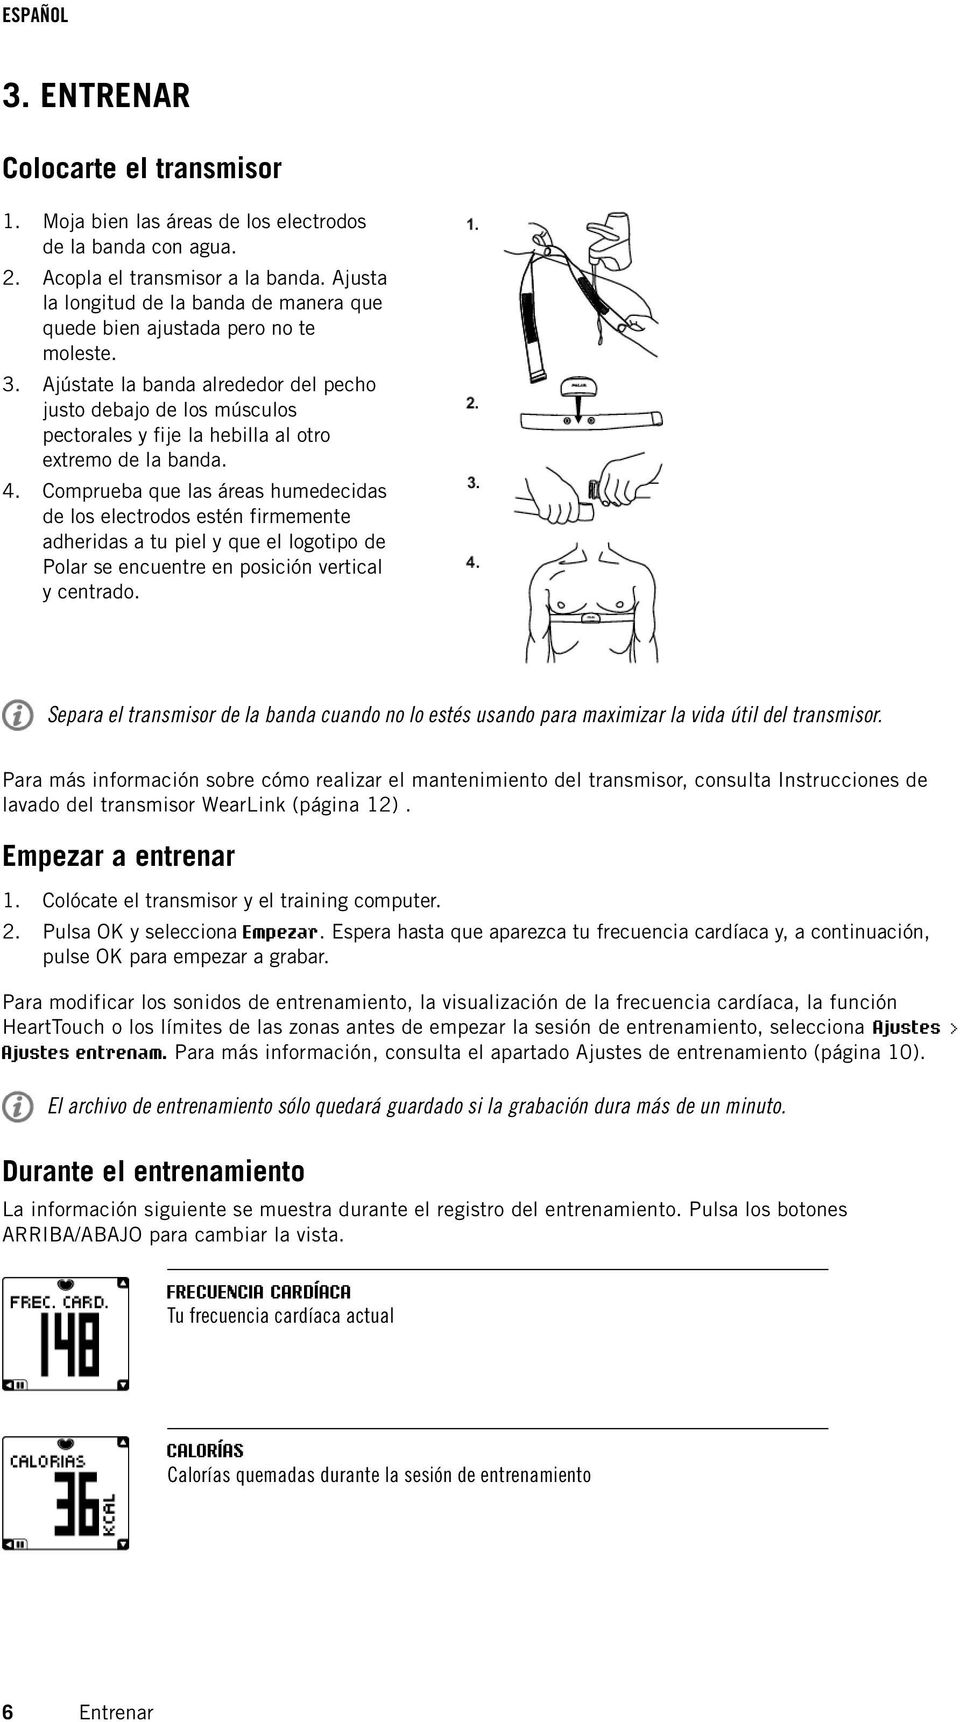 ESPAÑOL. Polar FT4 Manual del Usuario - PDF